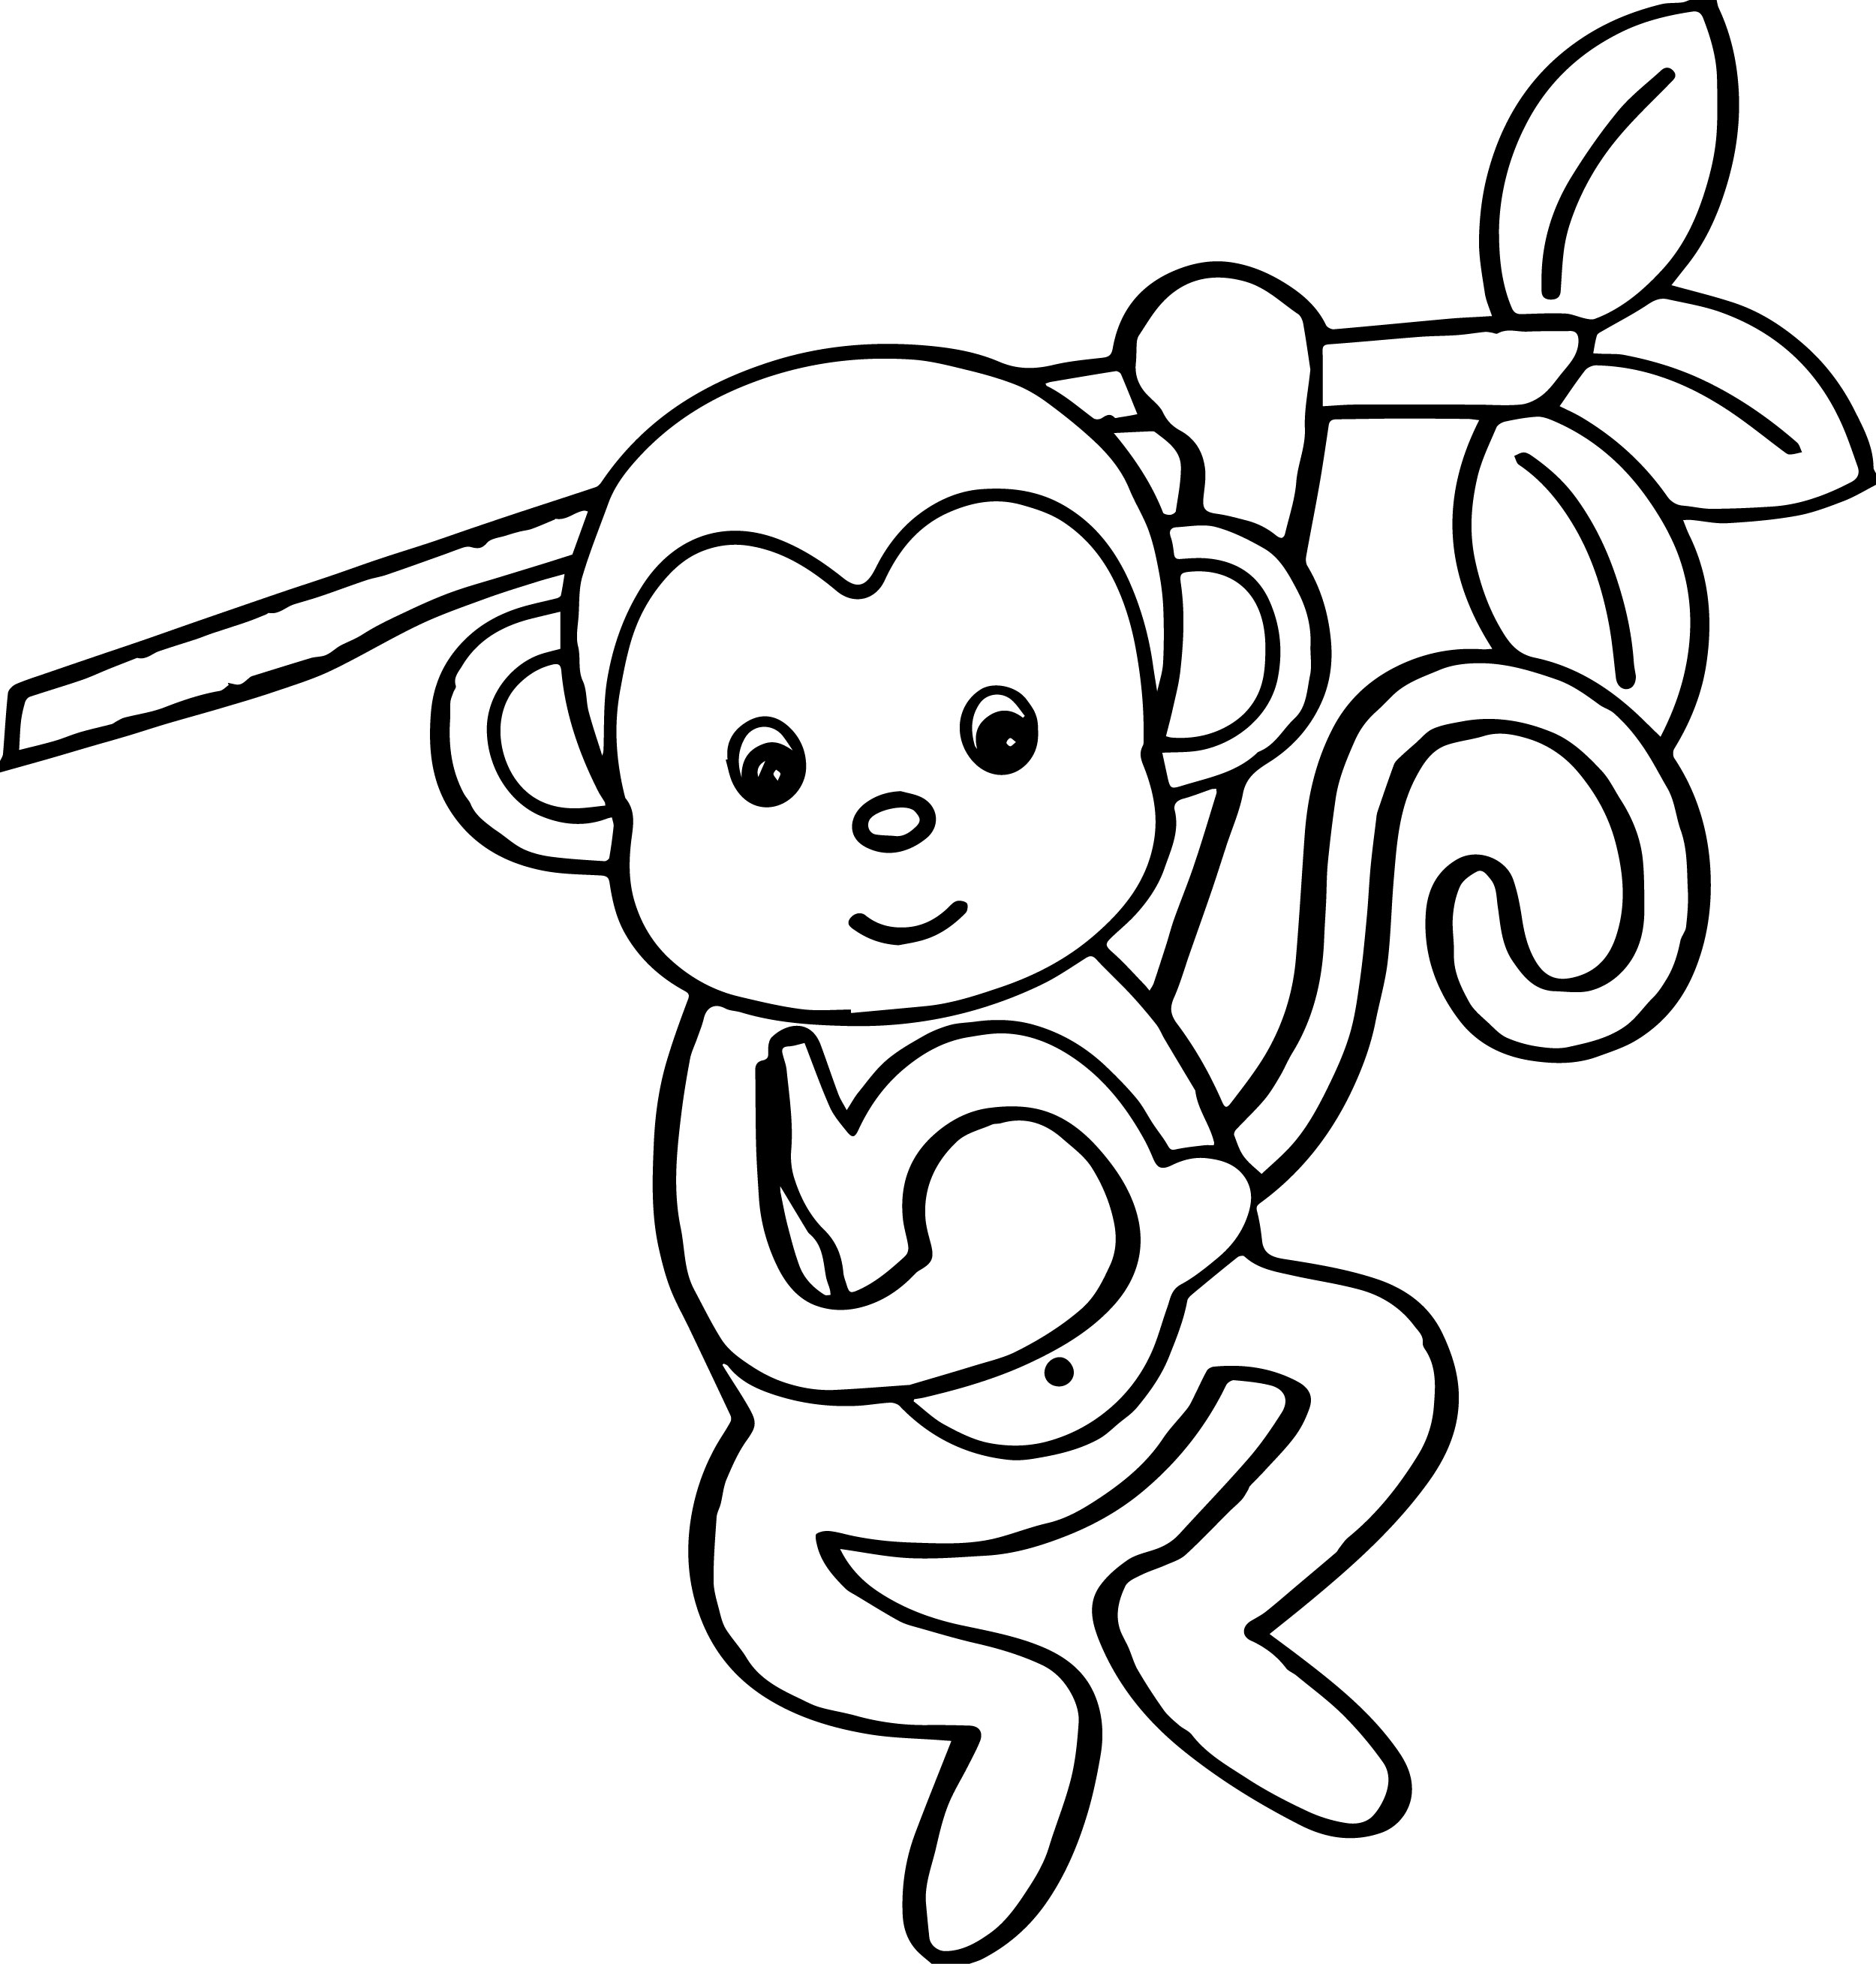 2500x2617 Coloring Pages Monkey Coloring Page Cartoon Animals Kids Pages